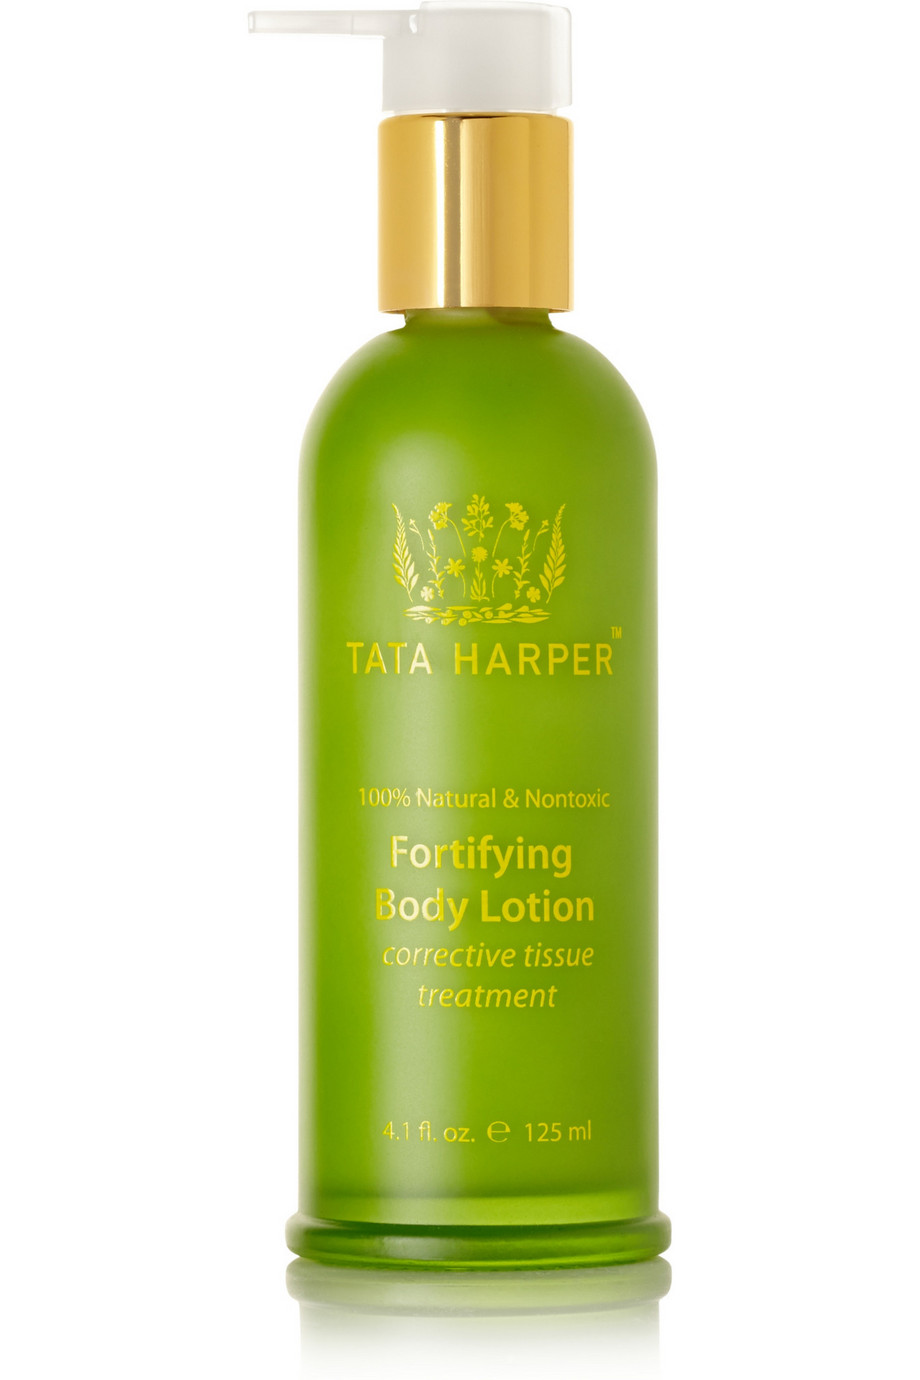 Fortifying Body Lotion, 125ml, by Tata Harper